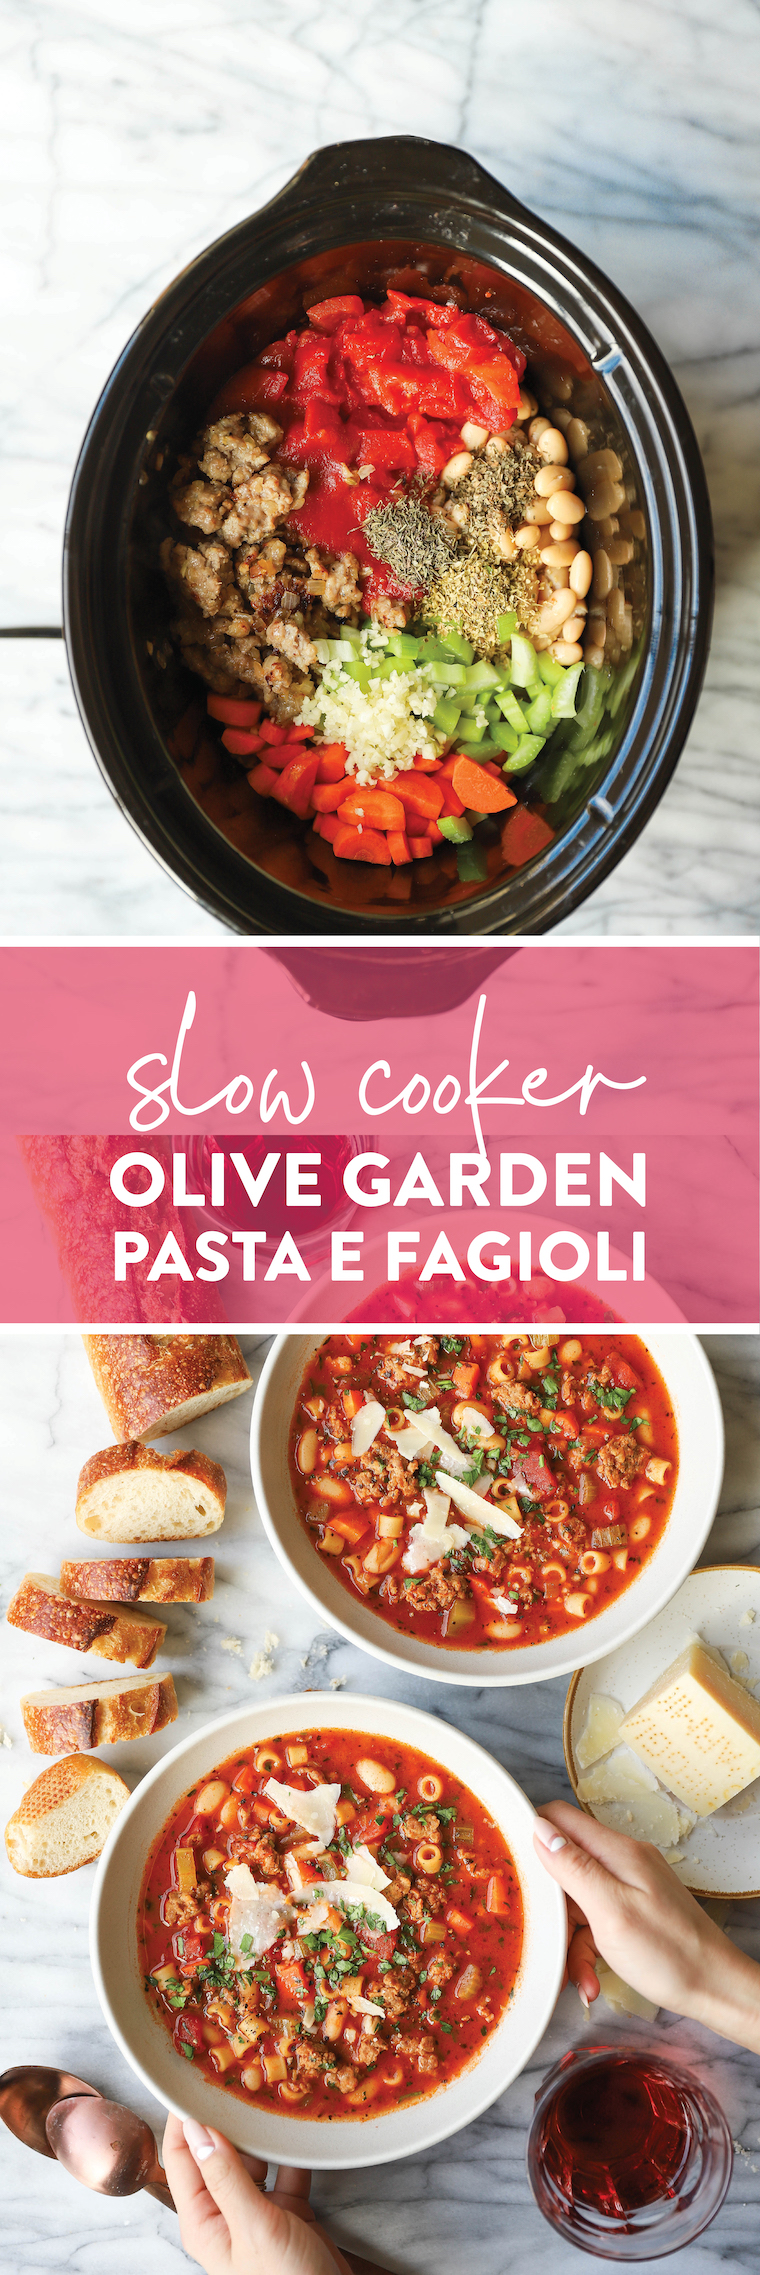 Slow Cooker Olive Garden Pasta e Fagioli - Everyone's FAVORITE Olive Garden soup made so easily in the crockpot! Just set it and forget it!